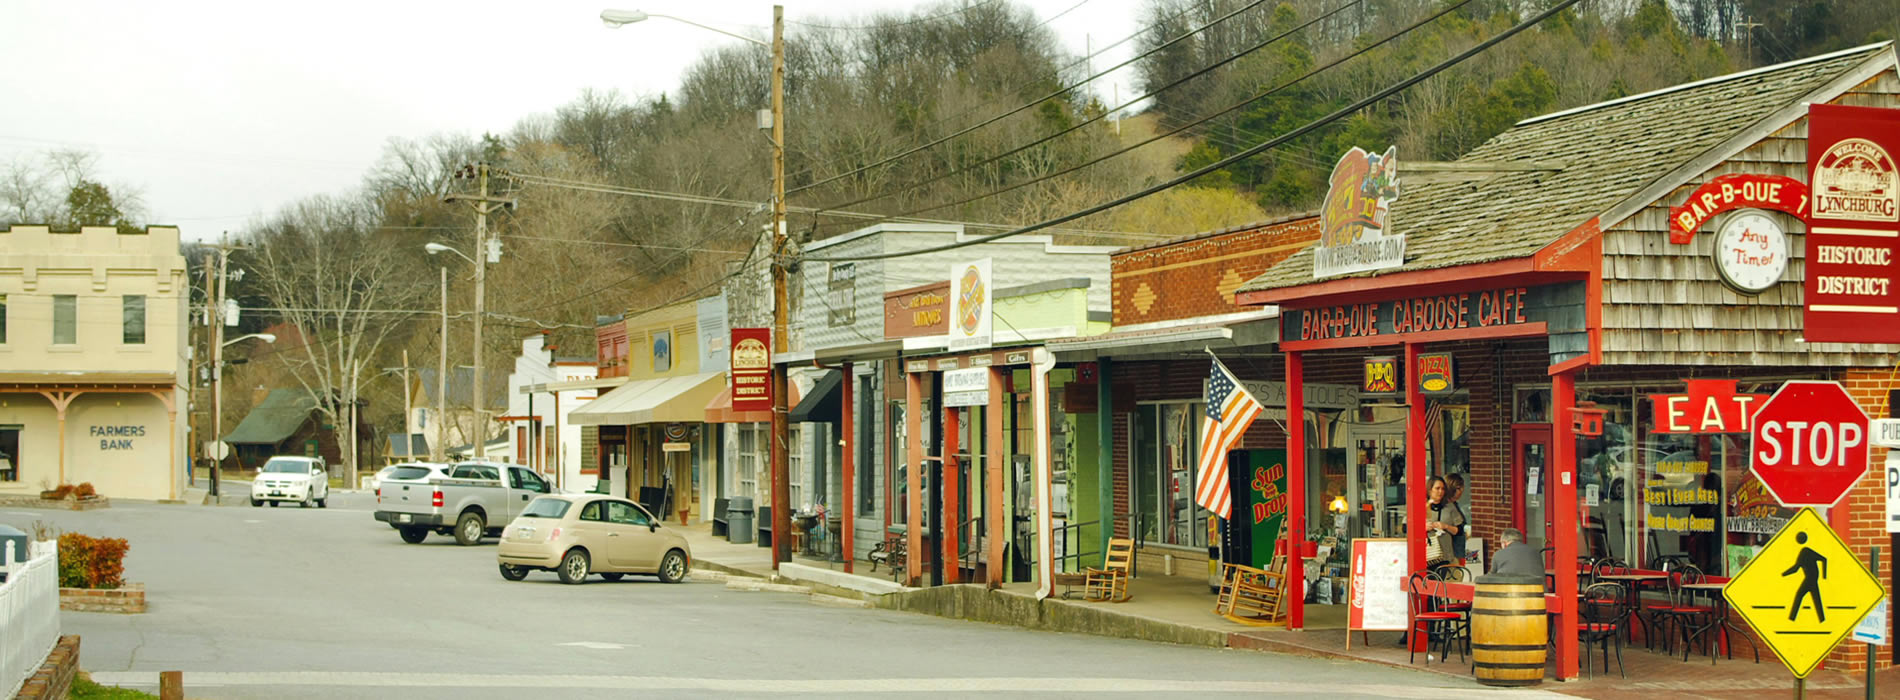 lynchburg TN old town main street